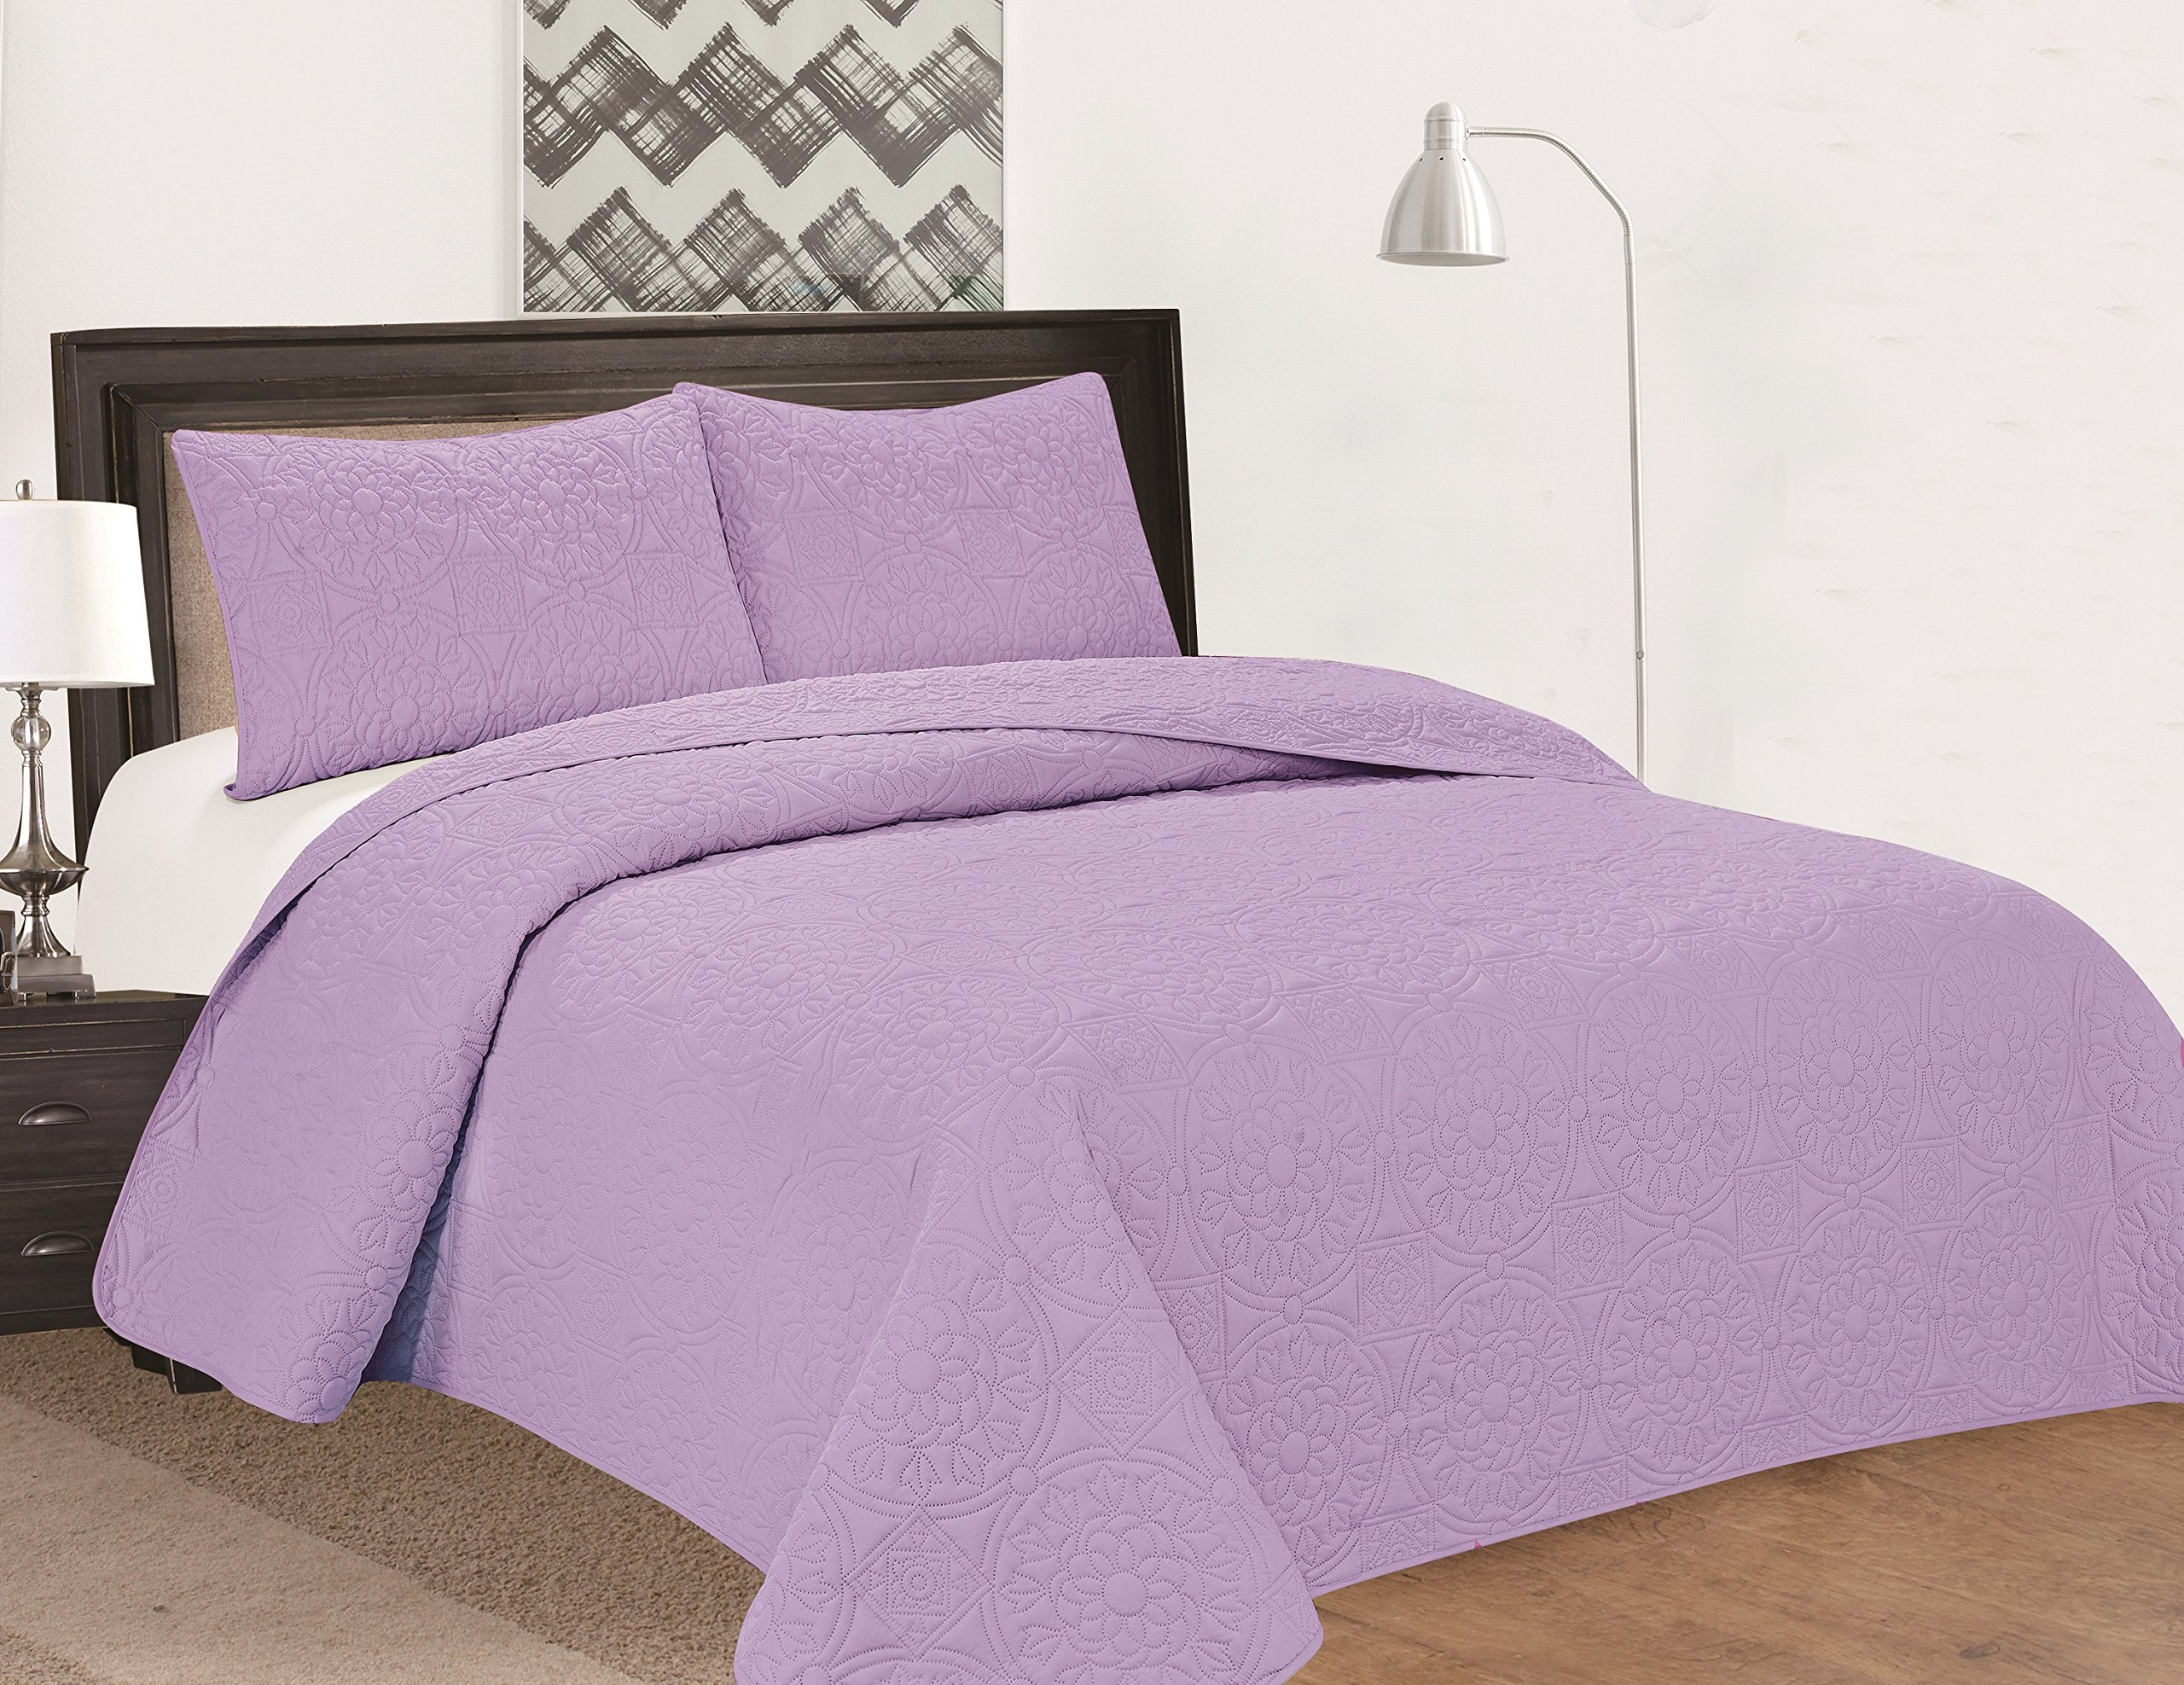 Royal Home Decor Extra Oversized 3-pc Bedspread Set with Medallion Pattern (King, Lilac)